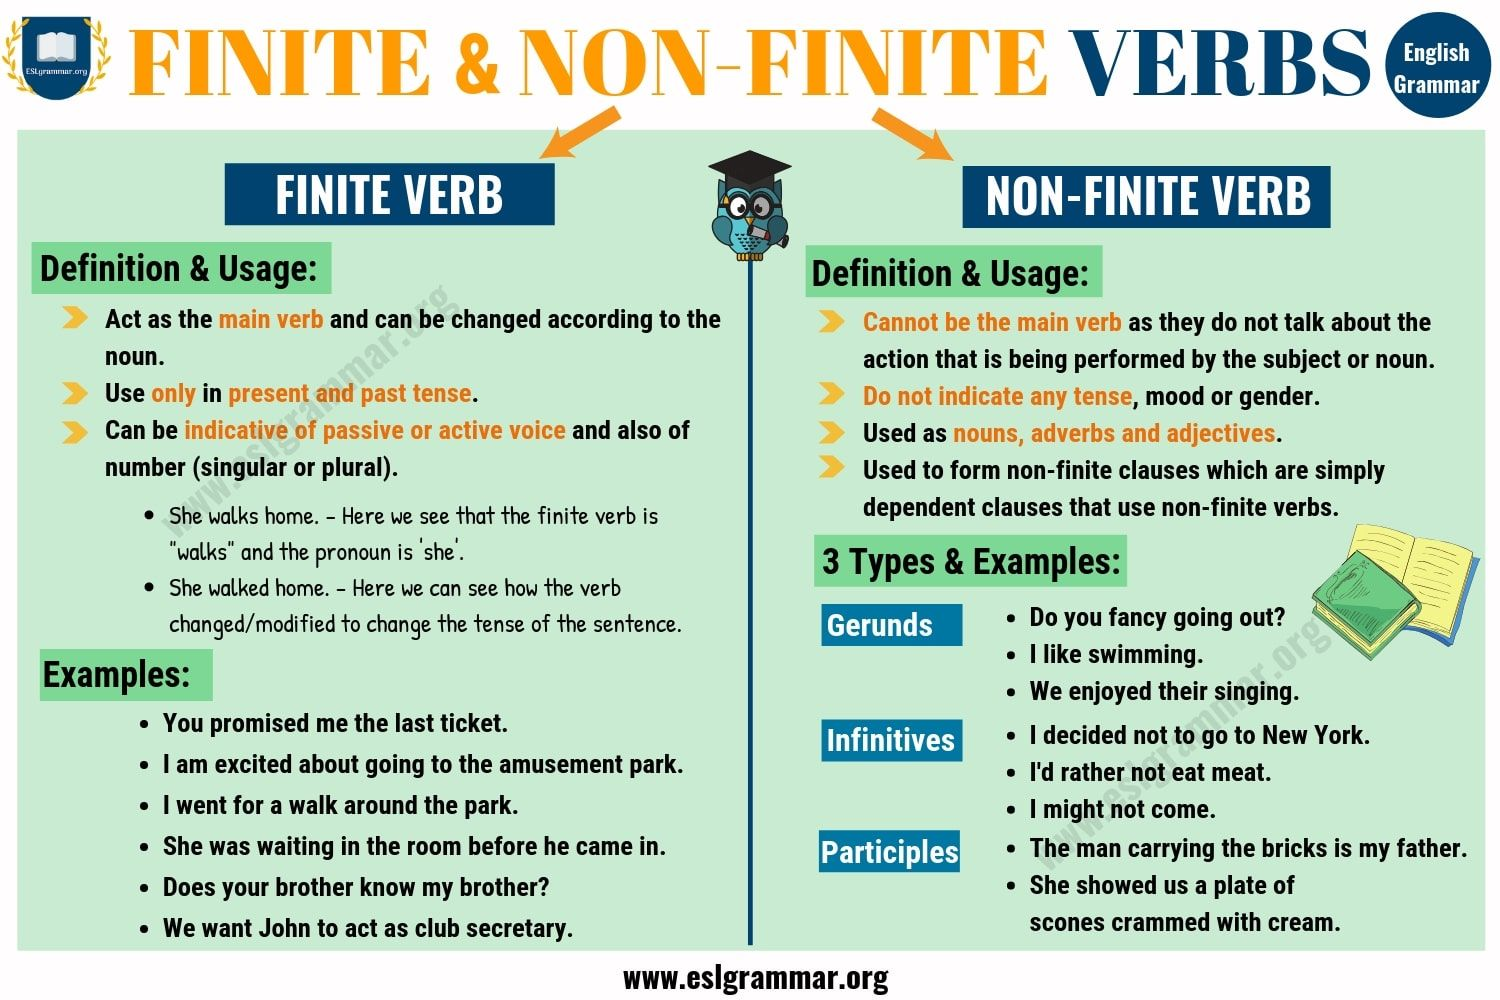 Finite And Non Finite Verbs Types Of Verbs Verb Verb Examples